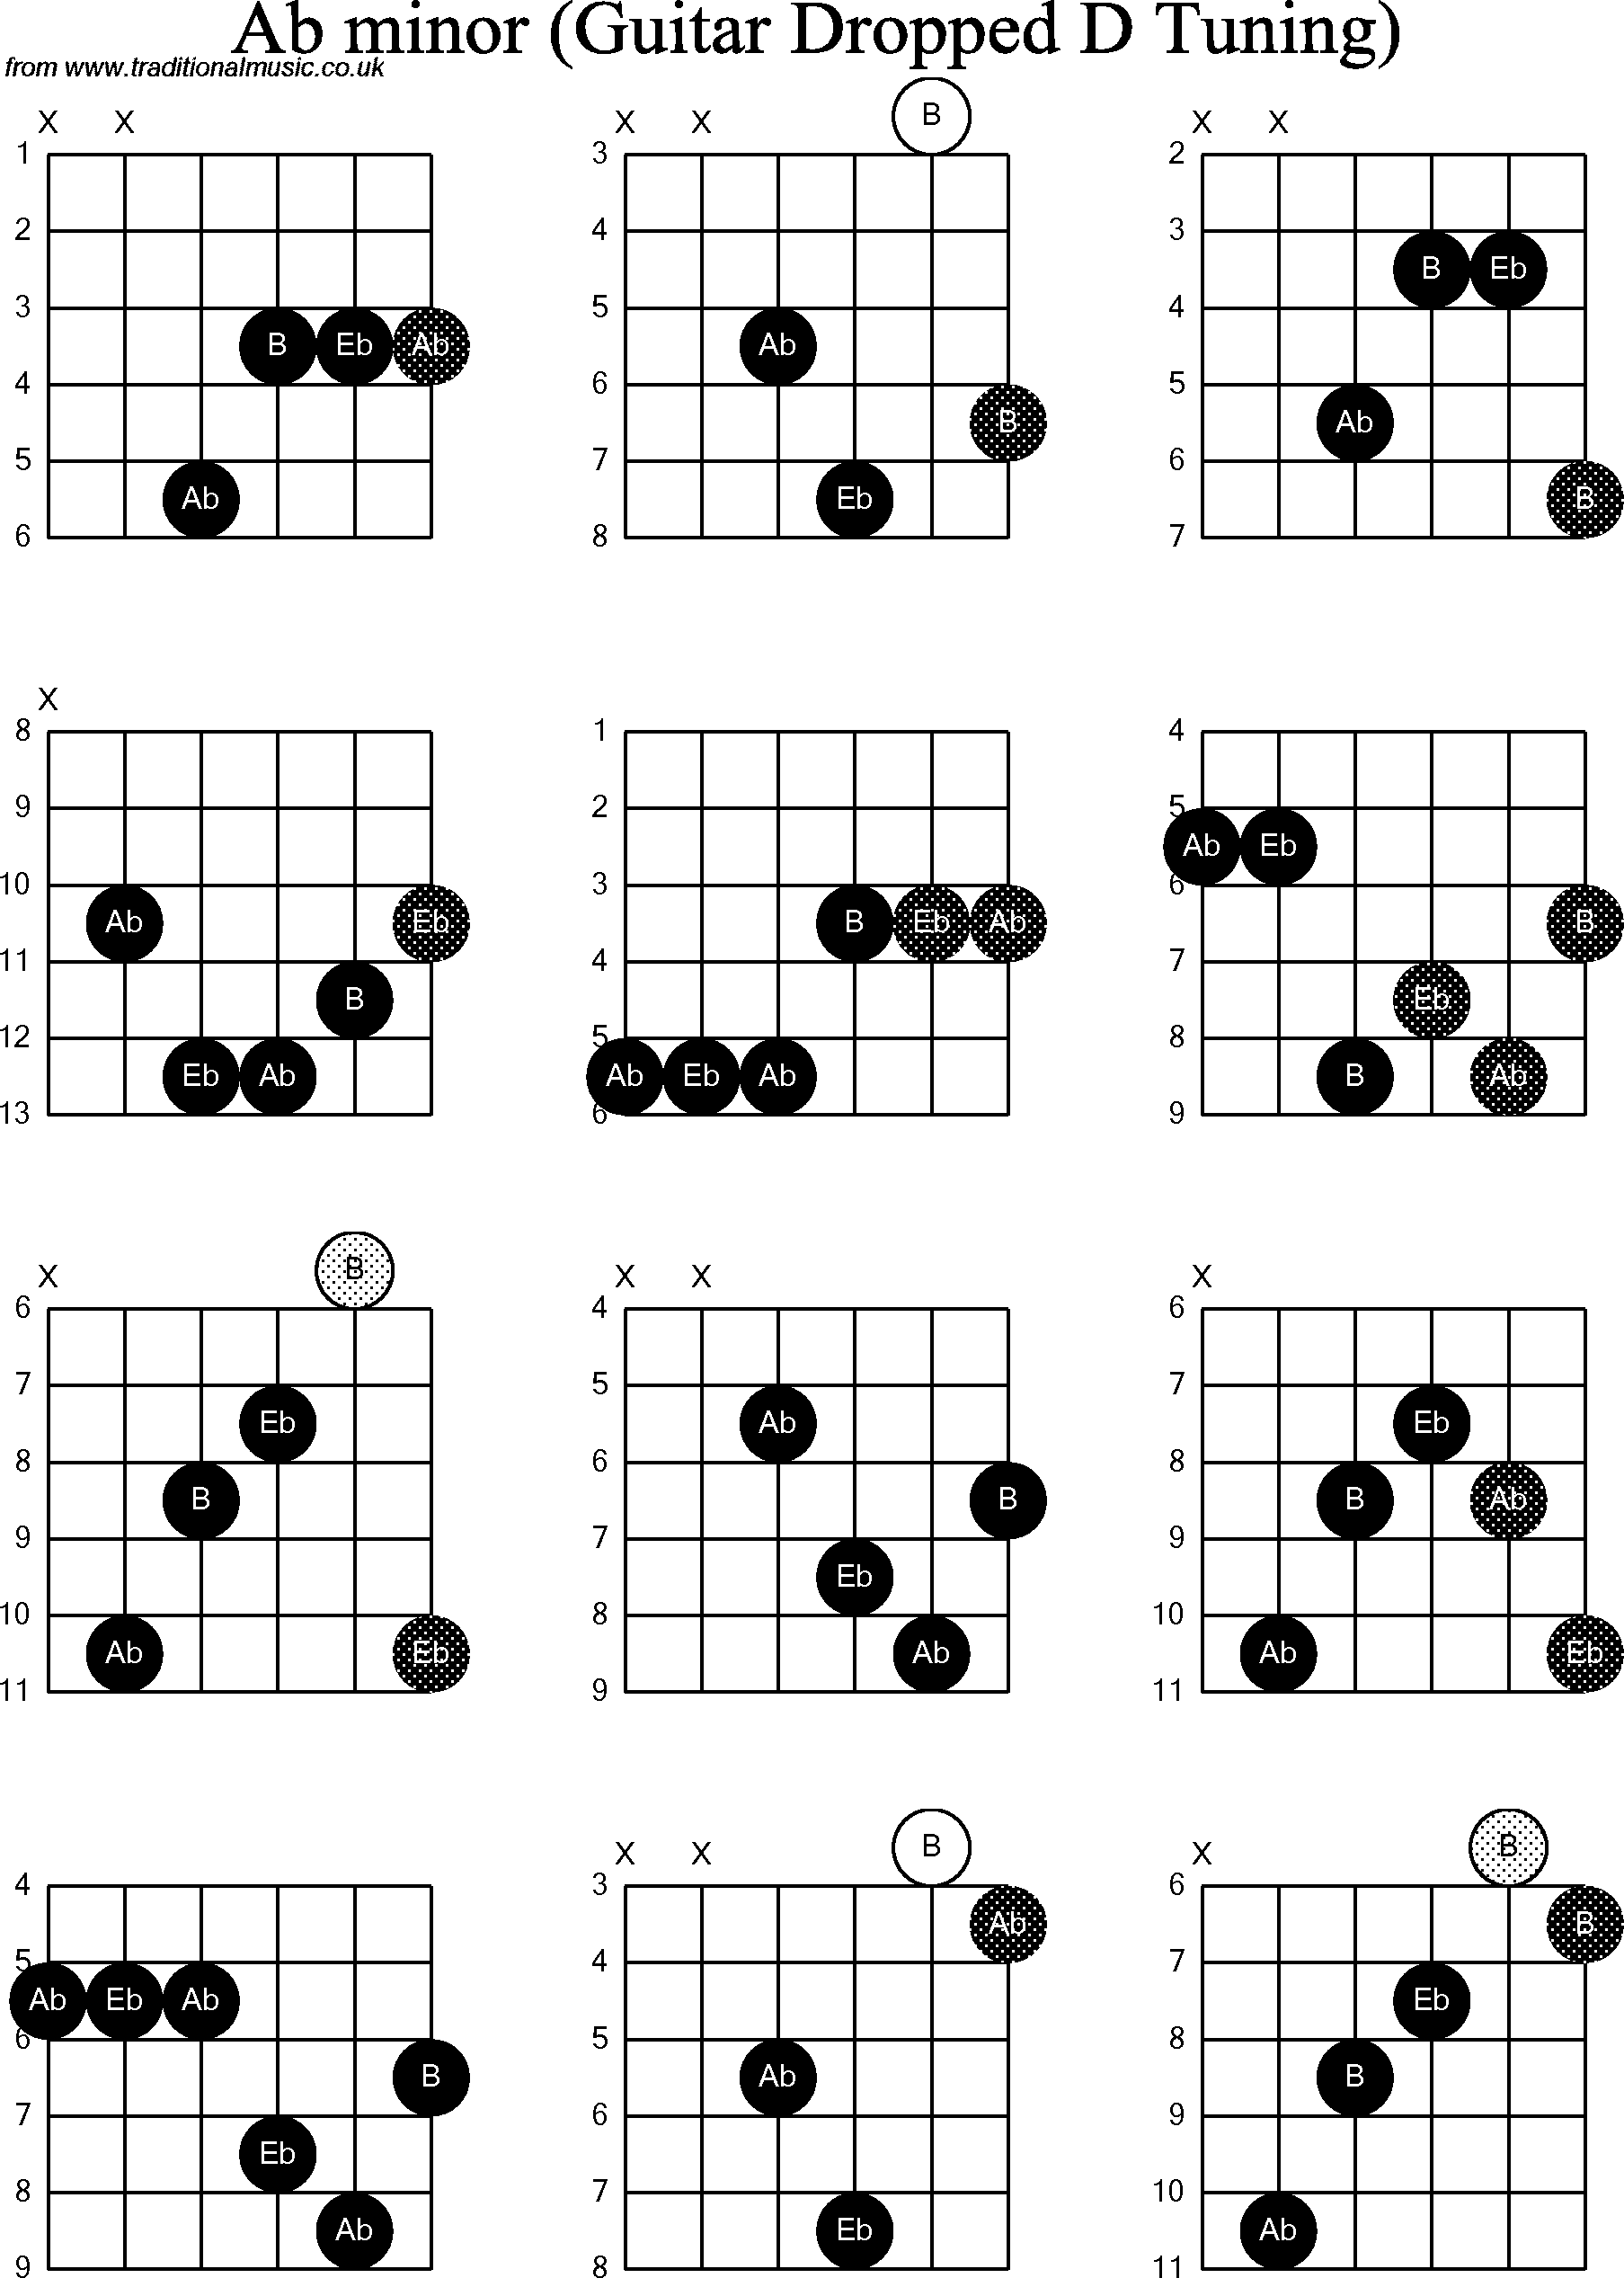 Guitar chord ab images guitar chords examples chord diagrams for dropped d guitardadgbe ab minor chord diagrams for dropped d guitardadgbe ab minor hexwebz Gallery